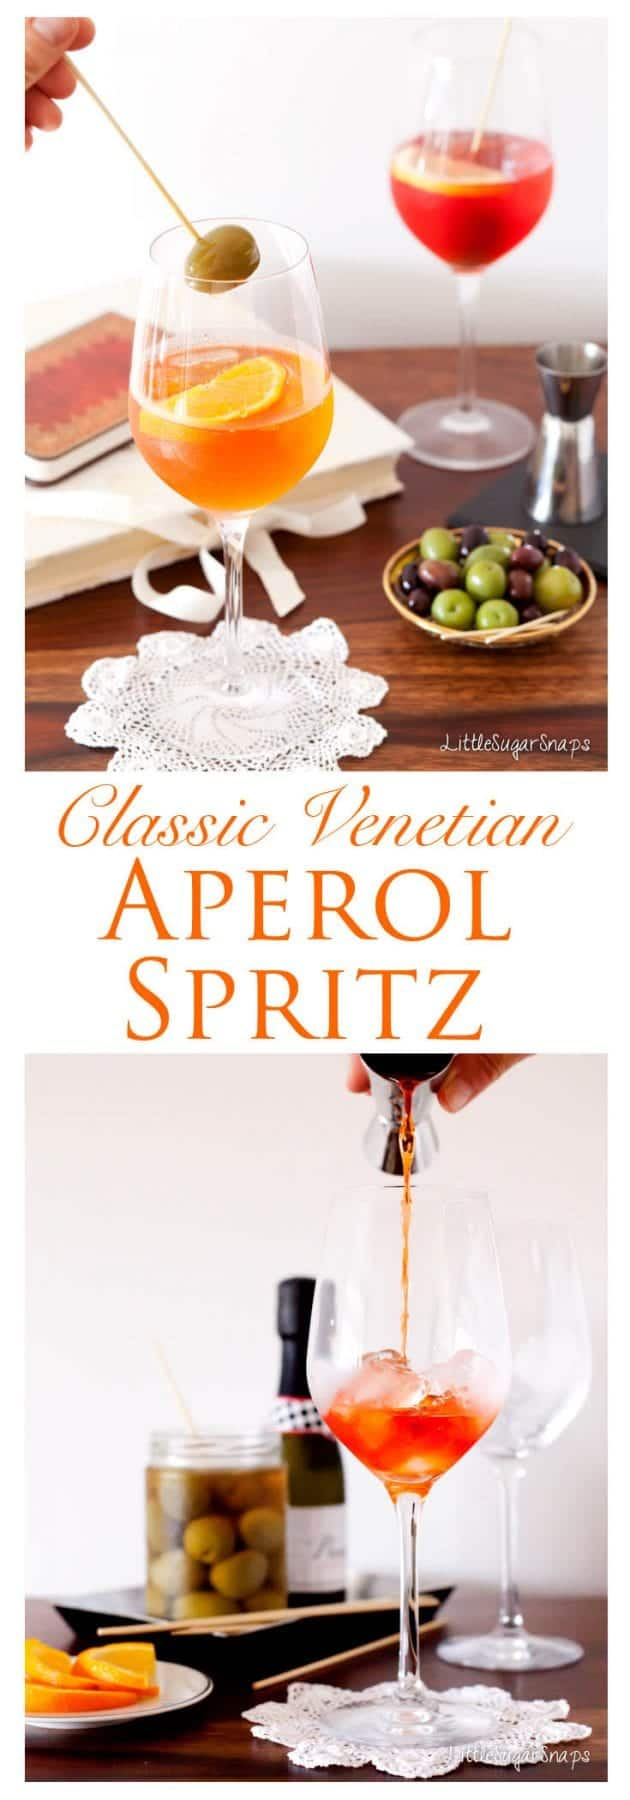 Wonderfully refreshing on a hot summers day, the Aperol Spritz is a Venetian classic. Serve over ice with a slice of orange and an olive.